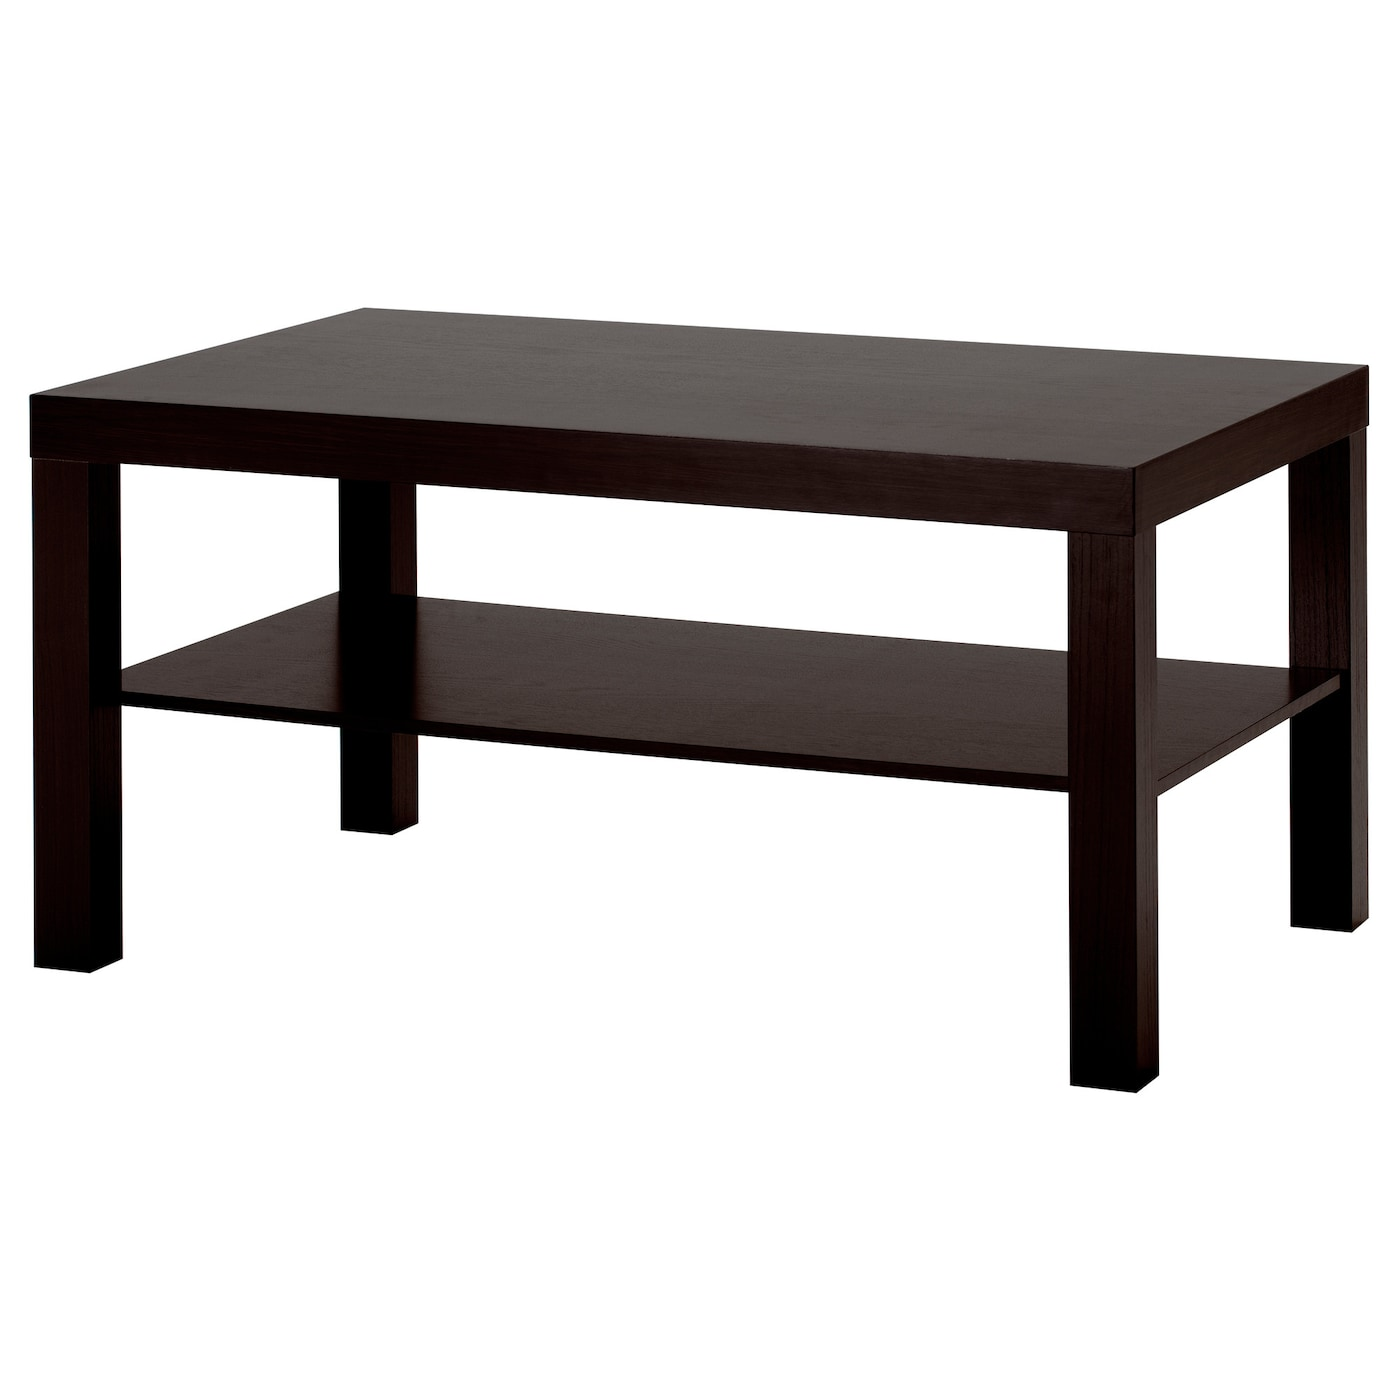 LACK Coffee Table Black-brown 90 X 55 Cm